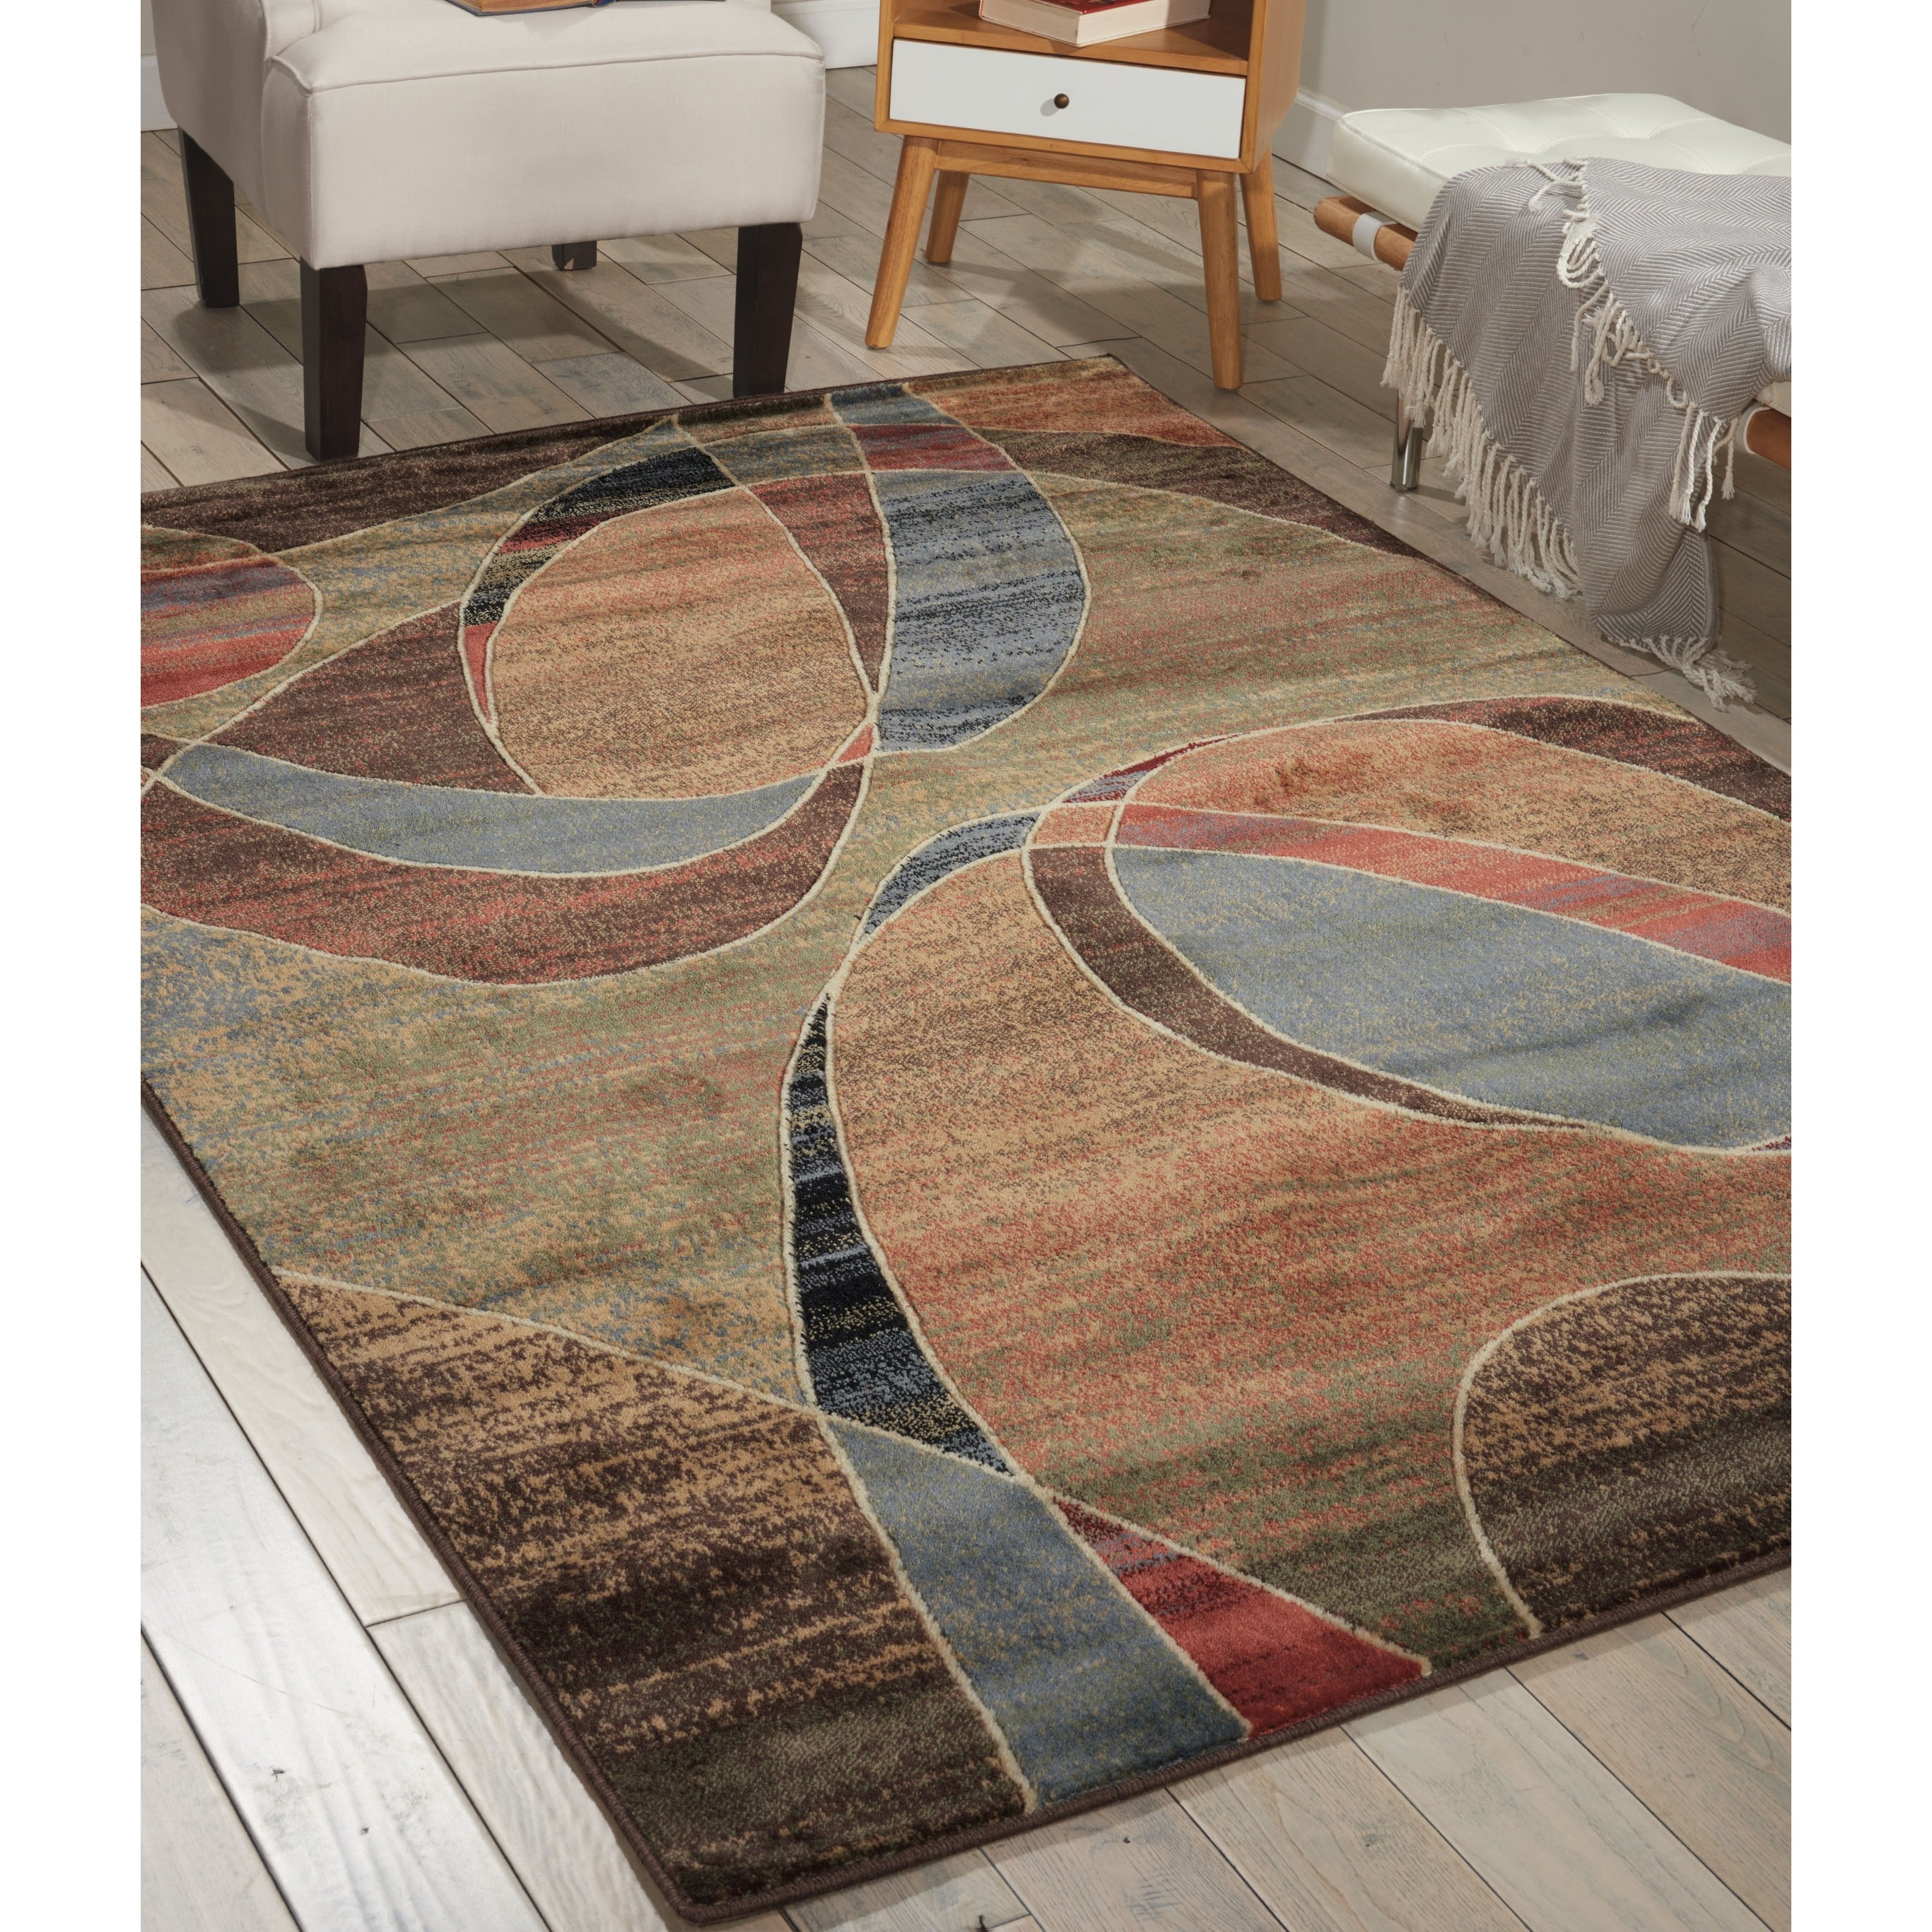 Nourison Expressions Multicolor Ribbons Rug (3'6 x 5'6) - Free Shipping  Today - Overstock.com - 13709318